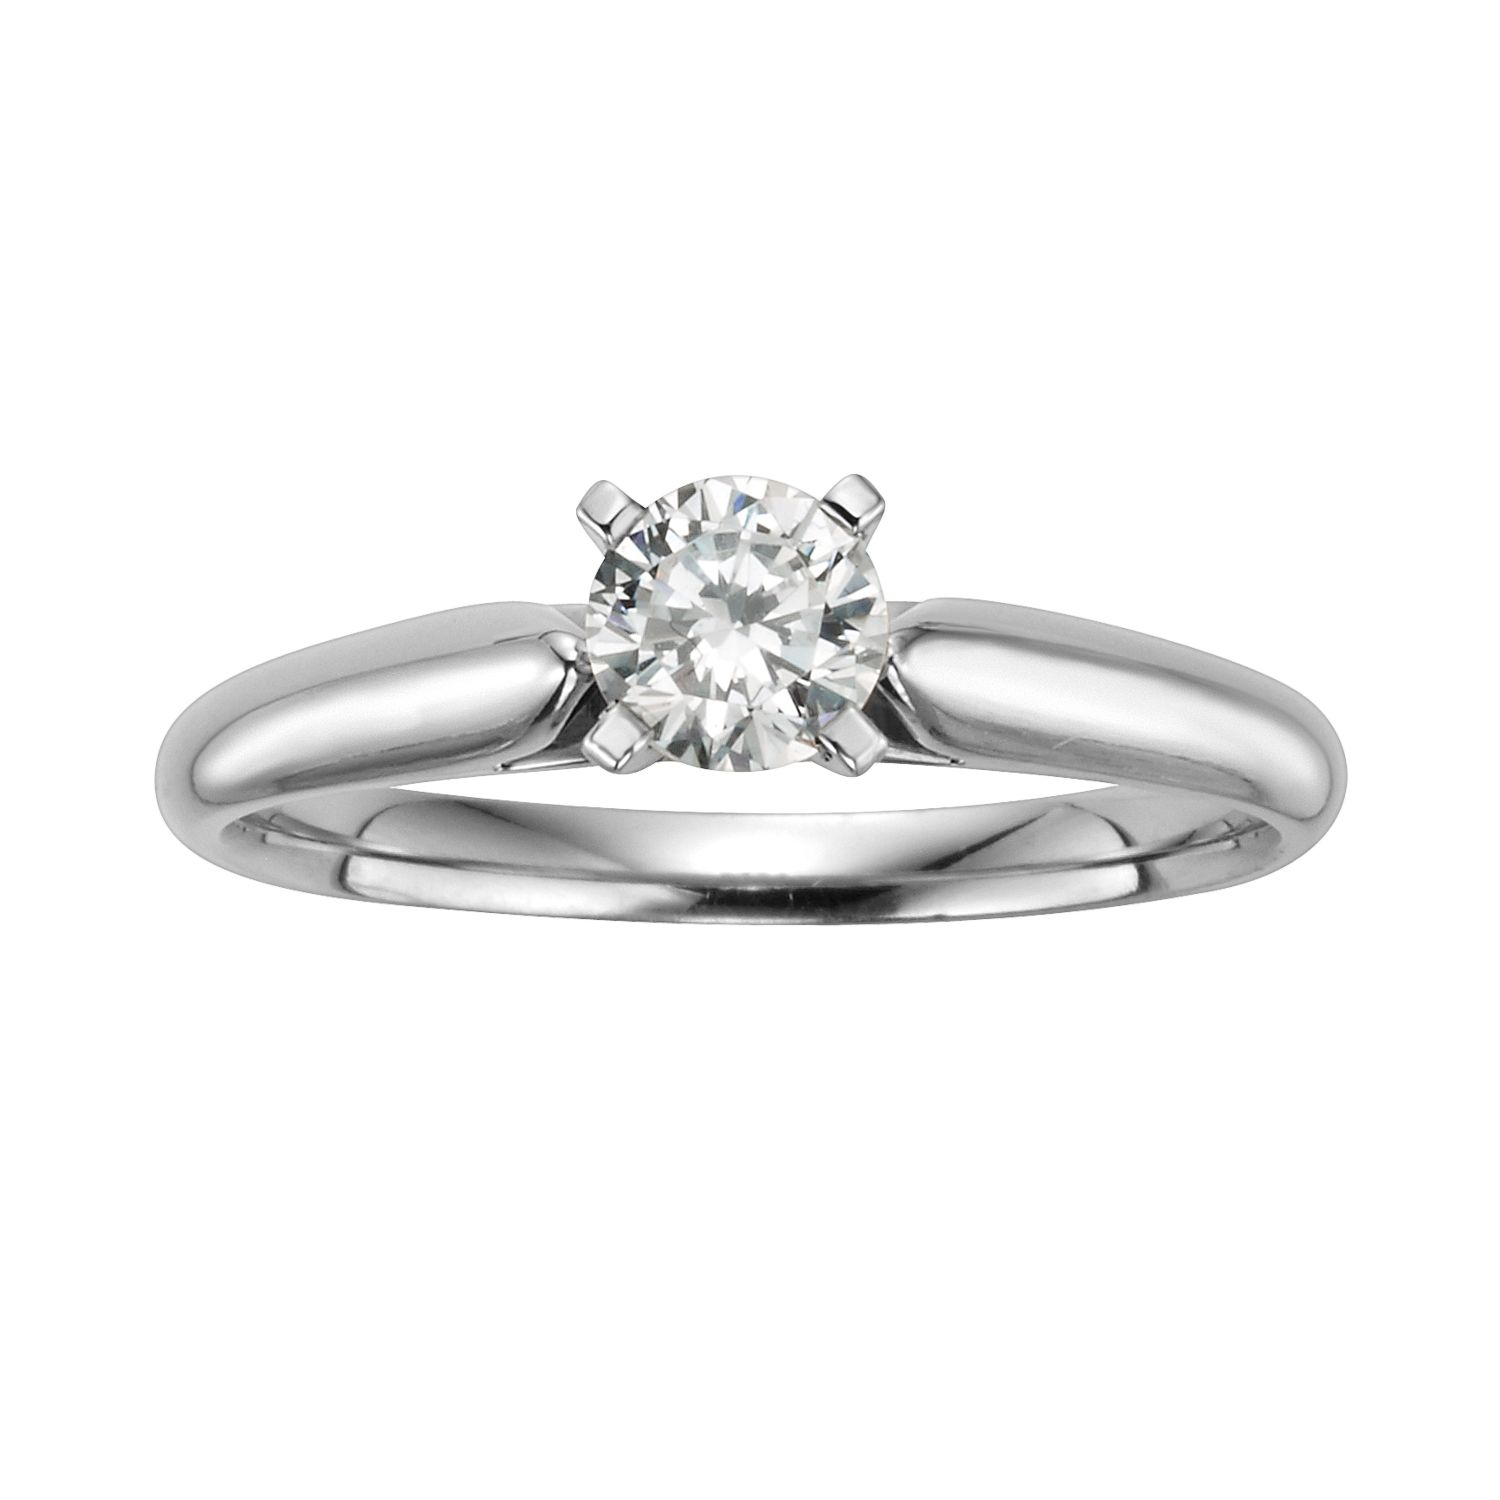 Kays Jewelers Wedding Bands 99 Ideal Round Cut IGL Certified